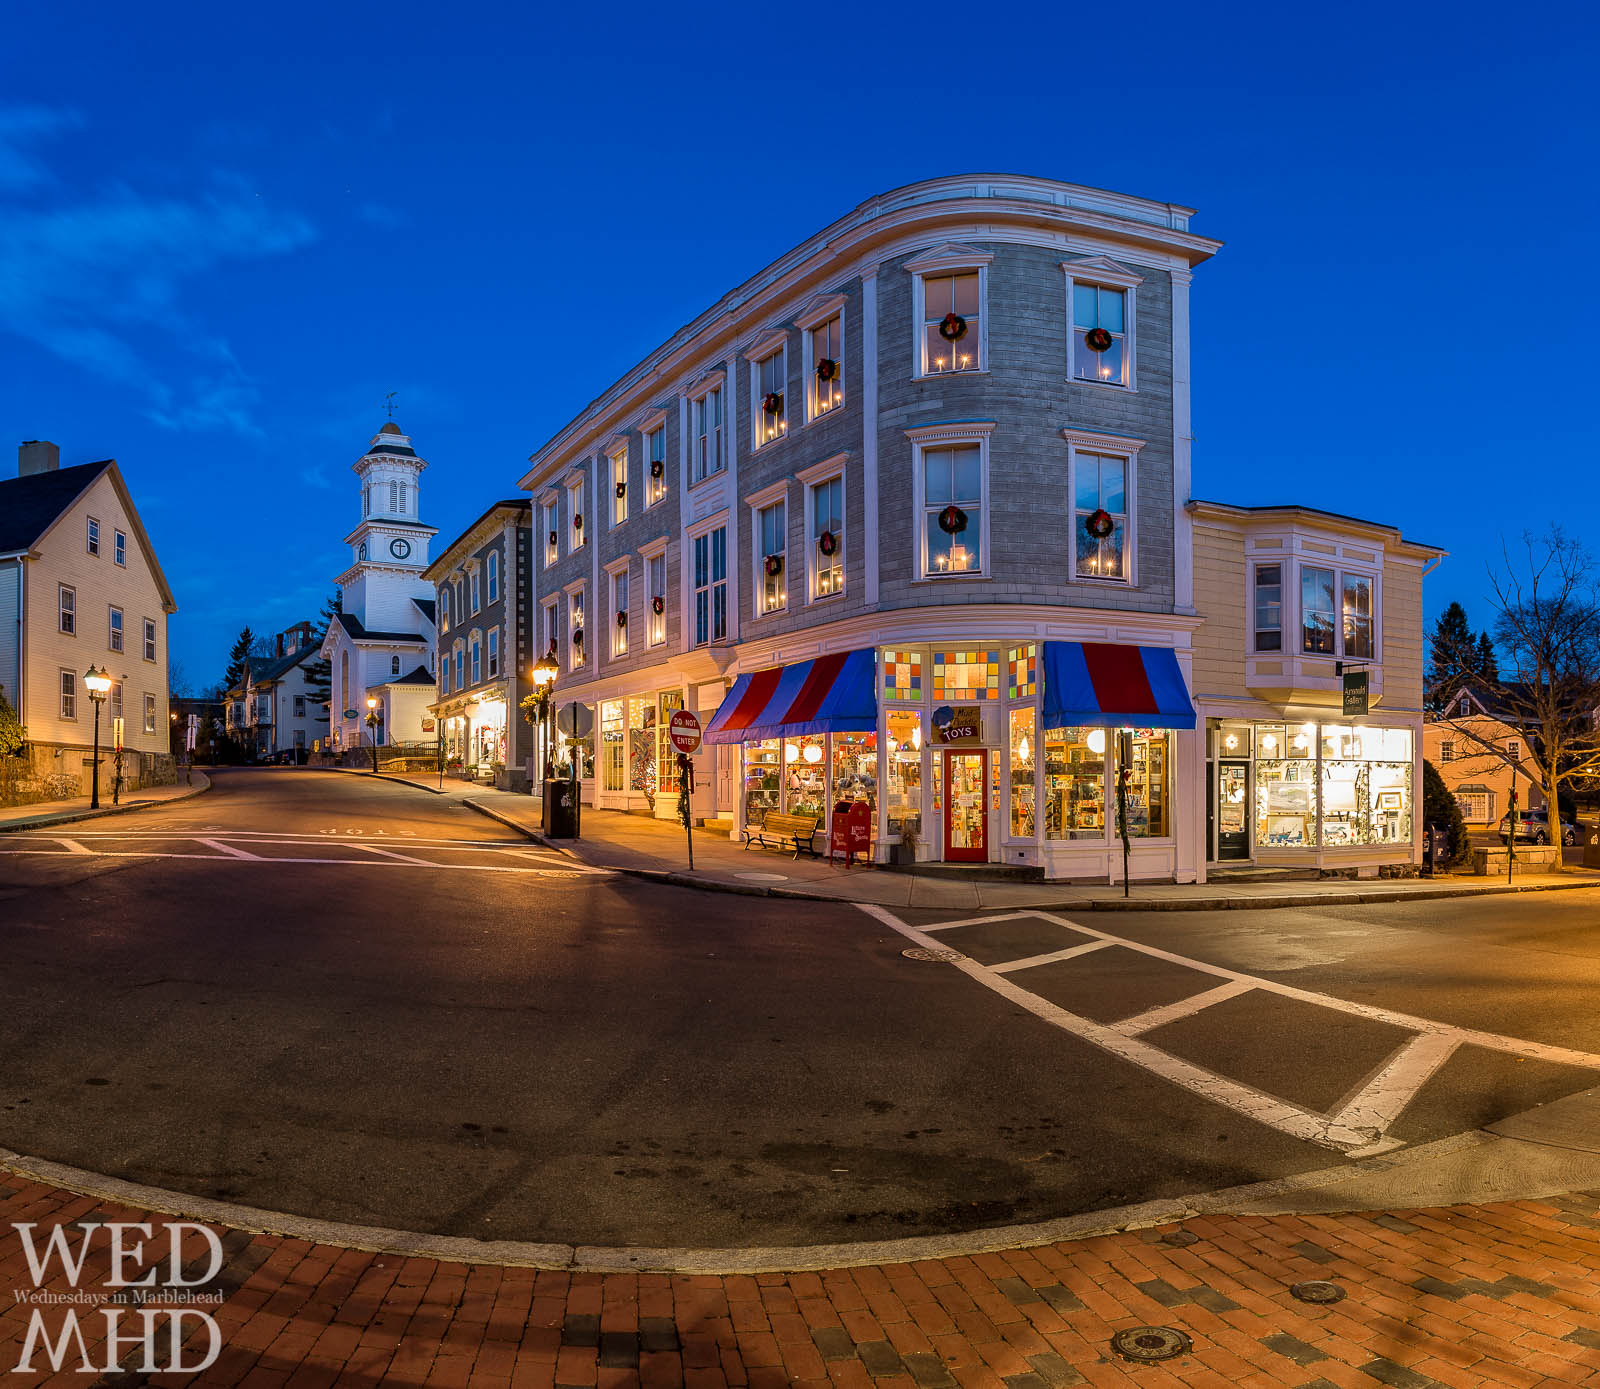 Holiday lights fill the windows or Arnould Gallery and Mud Puddle Toys on an early morning in historic downtown Marblehead